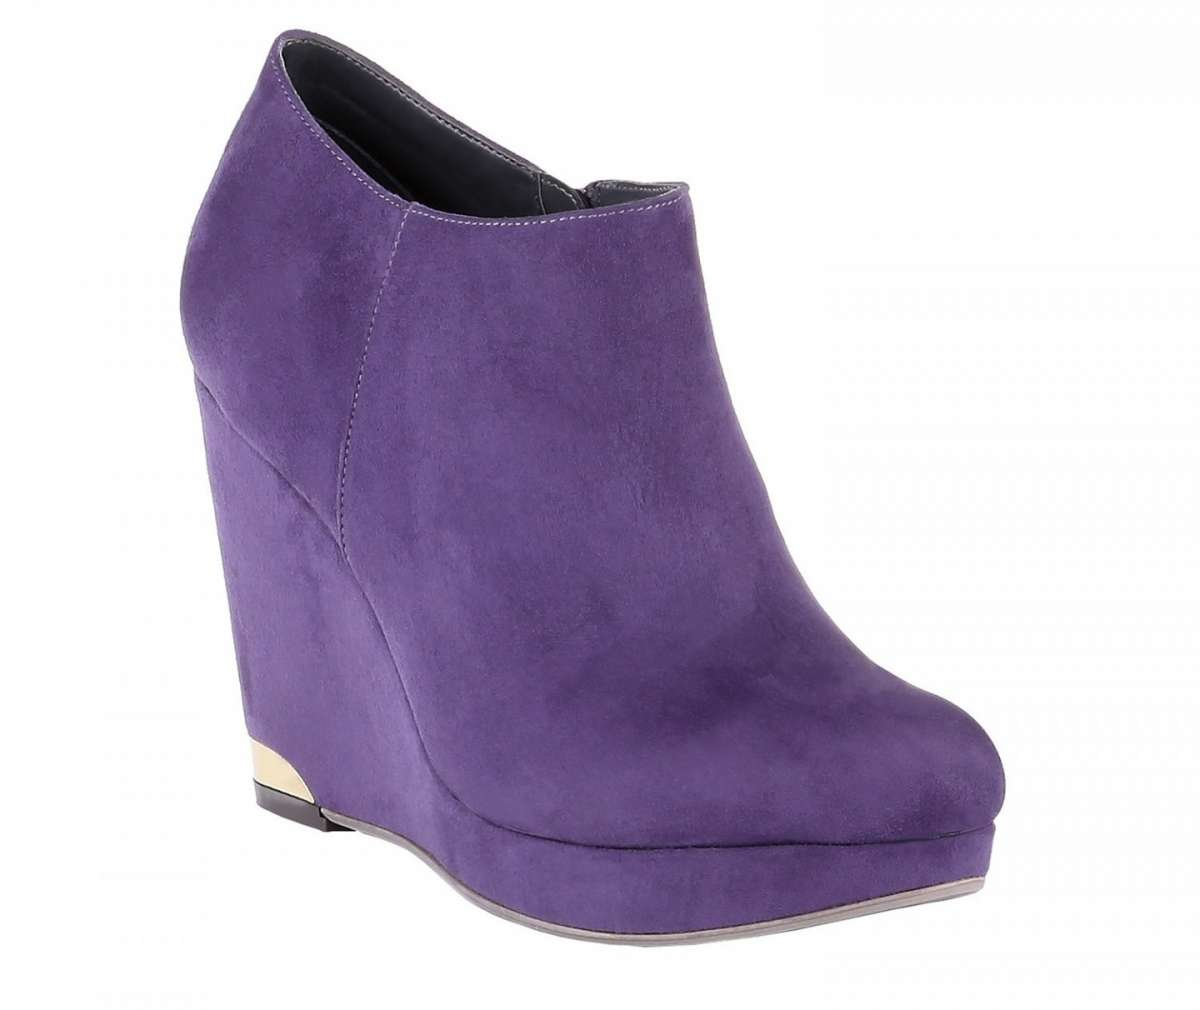 Ankle boot viola con zeppa